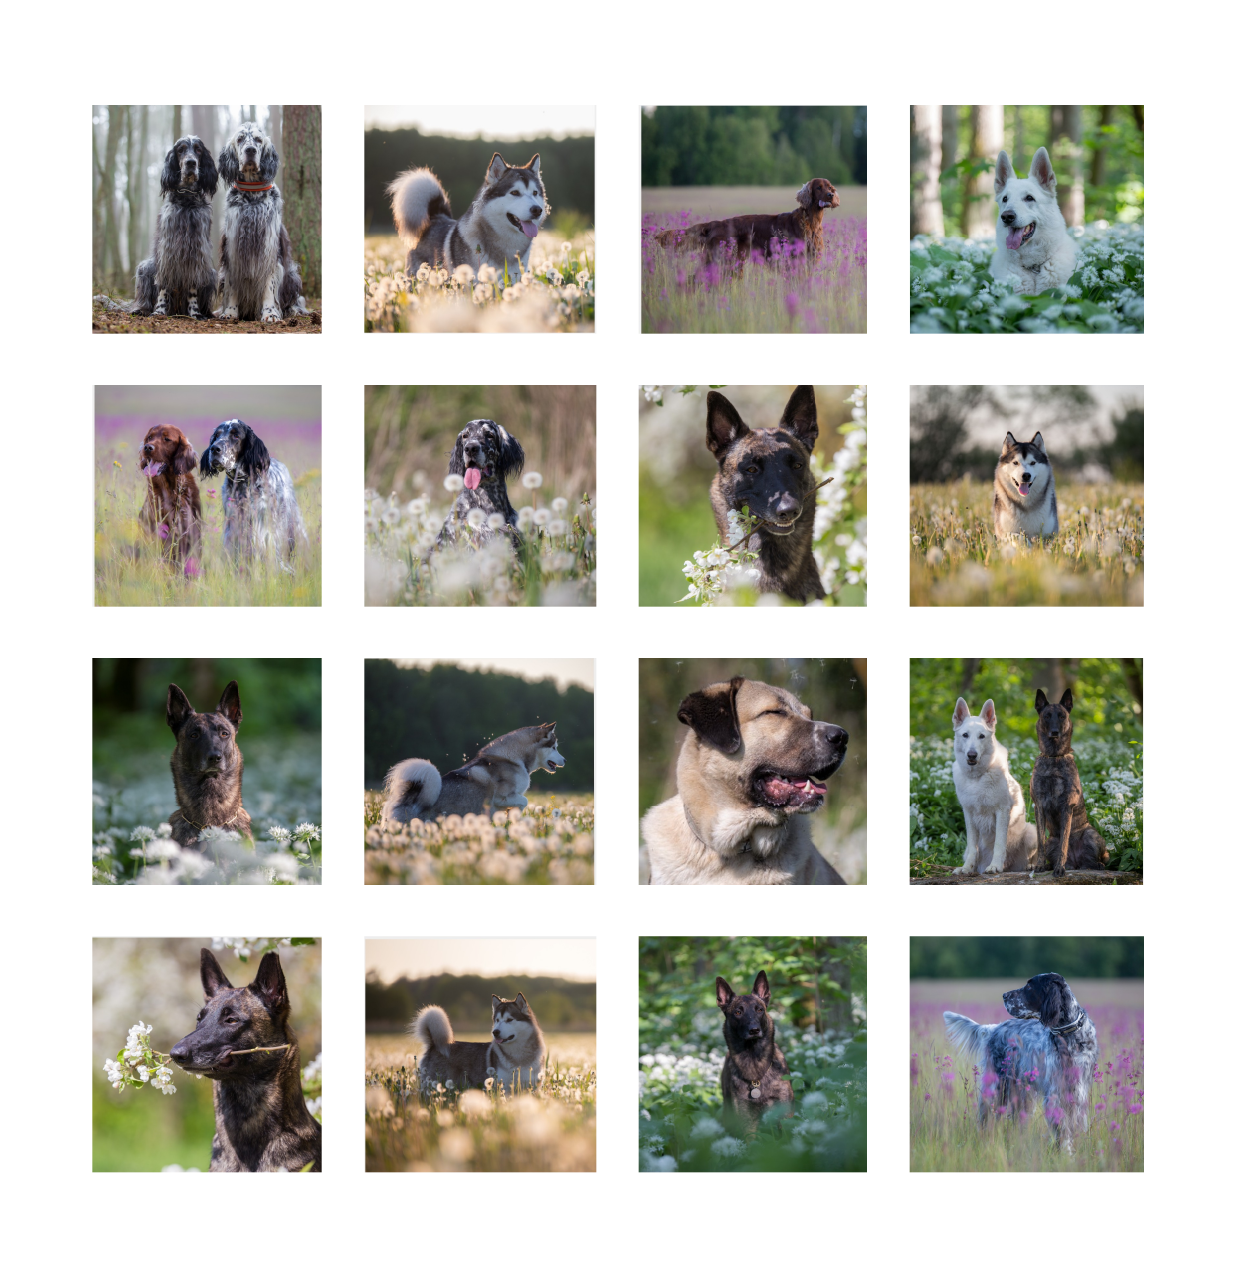 A dataset of images of 16 various types of dogs for machine learning